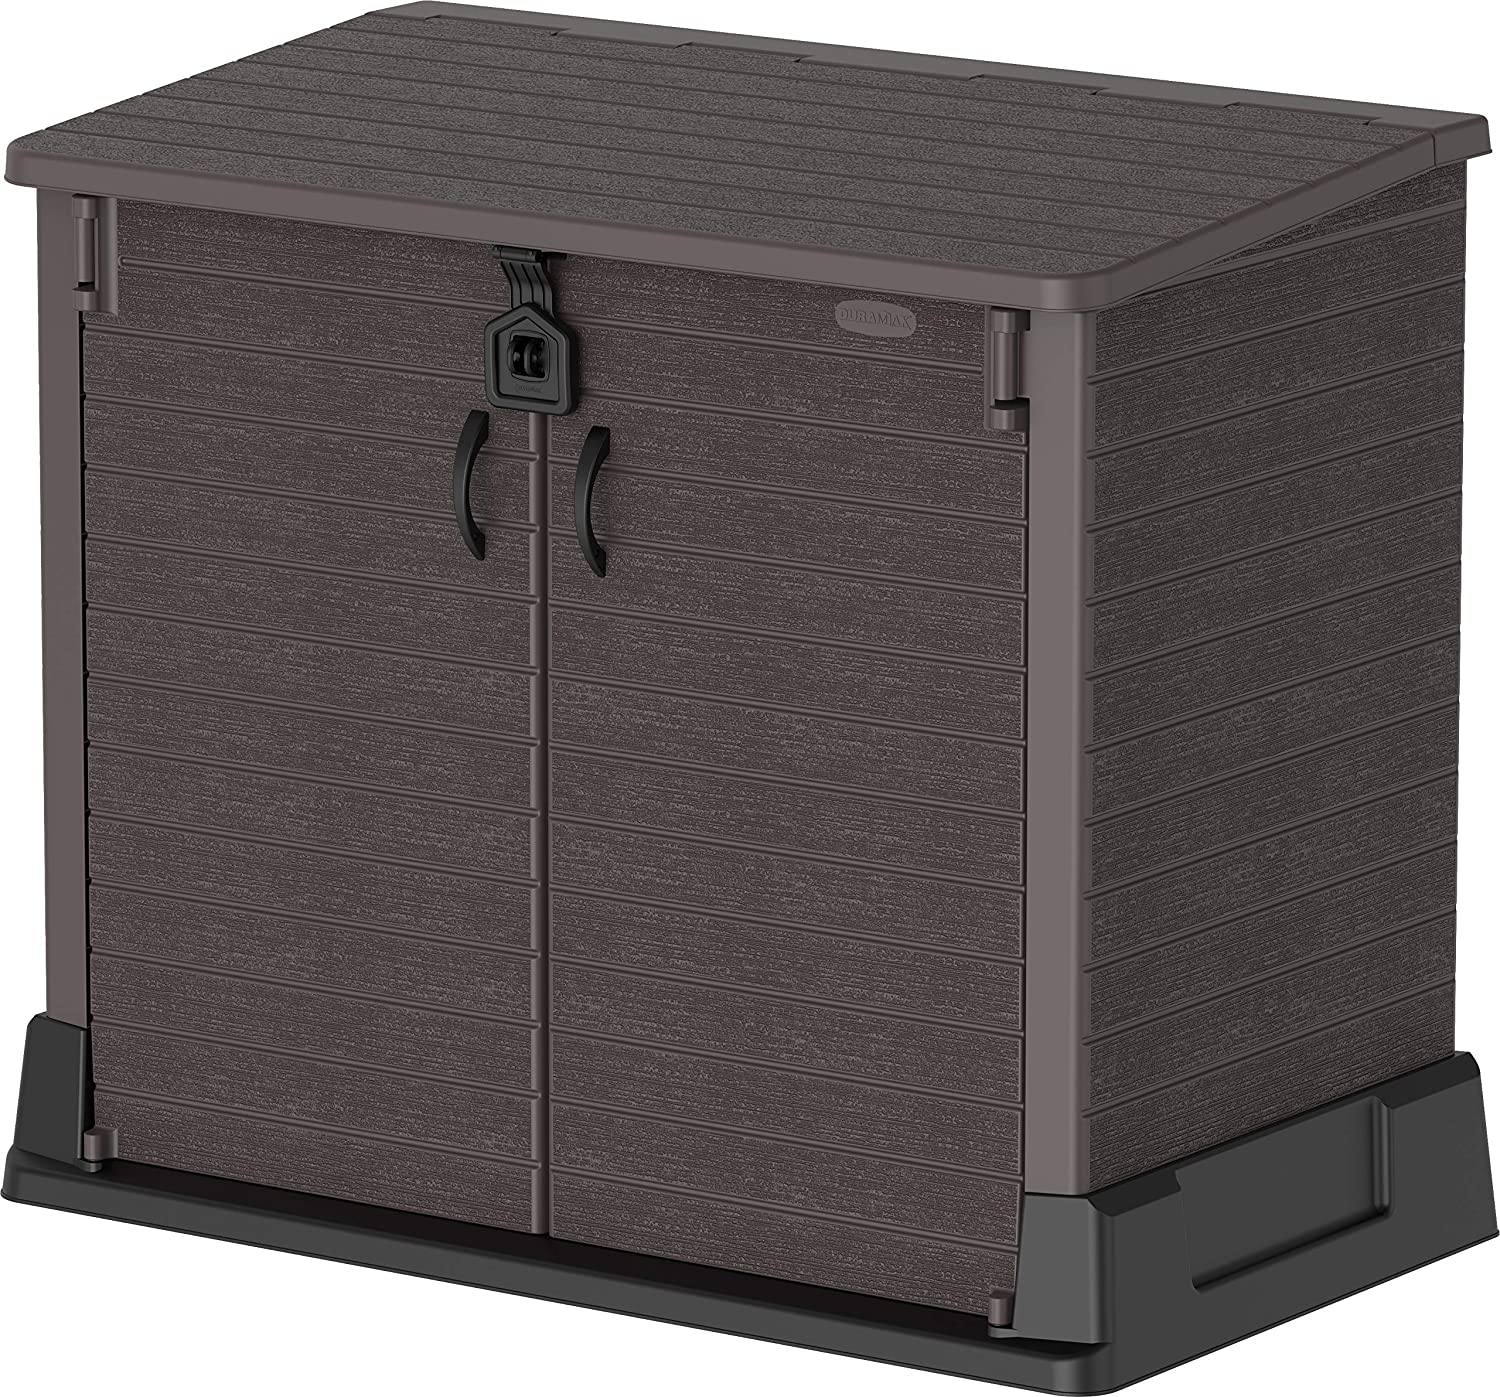 Duramax Cedargrain StoreAway 850L Plastic Garden Storage Shed - Outdoor Storage Bike Shed – Durable & Strong Construction– Ideal for Tools, Bikes, BBQs & 2x 120L Garbage Bins, 130 x 74 x 110 cm, Brown